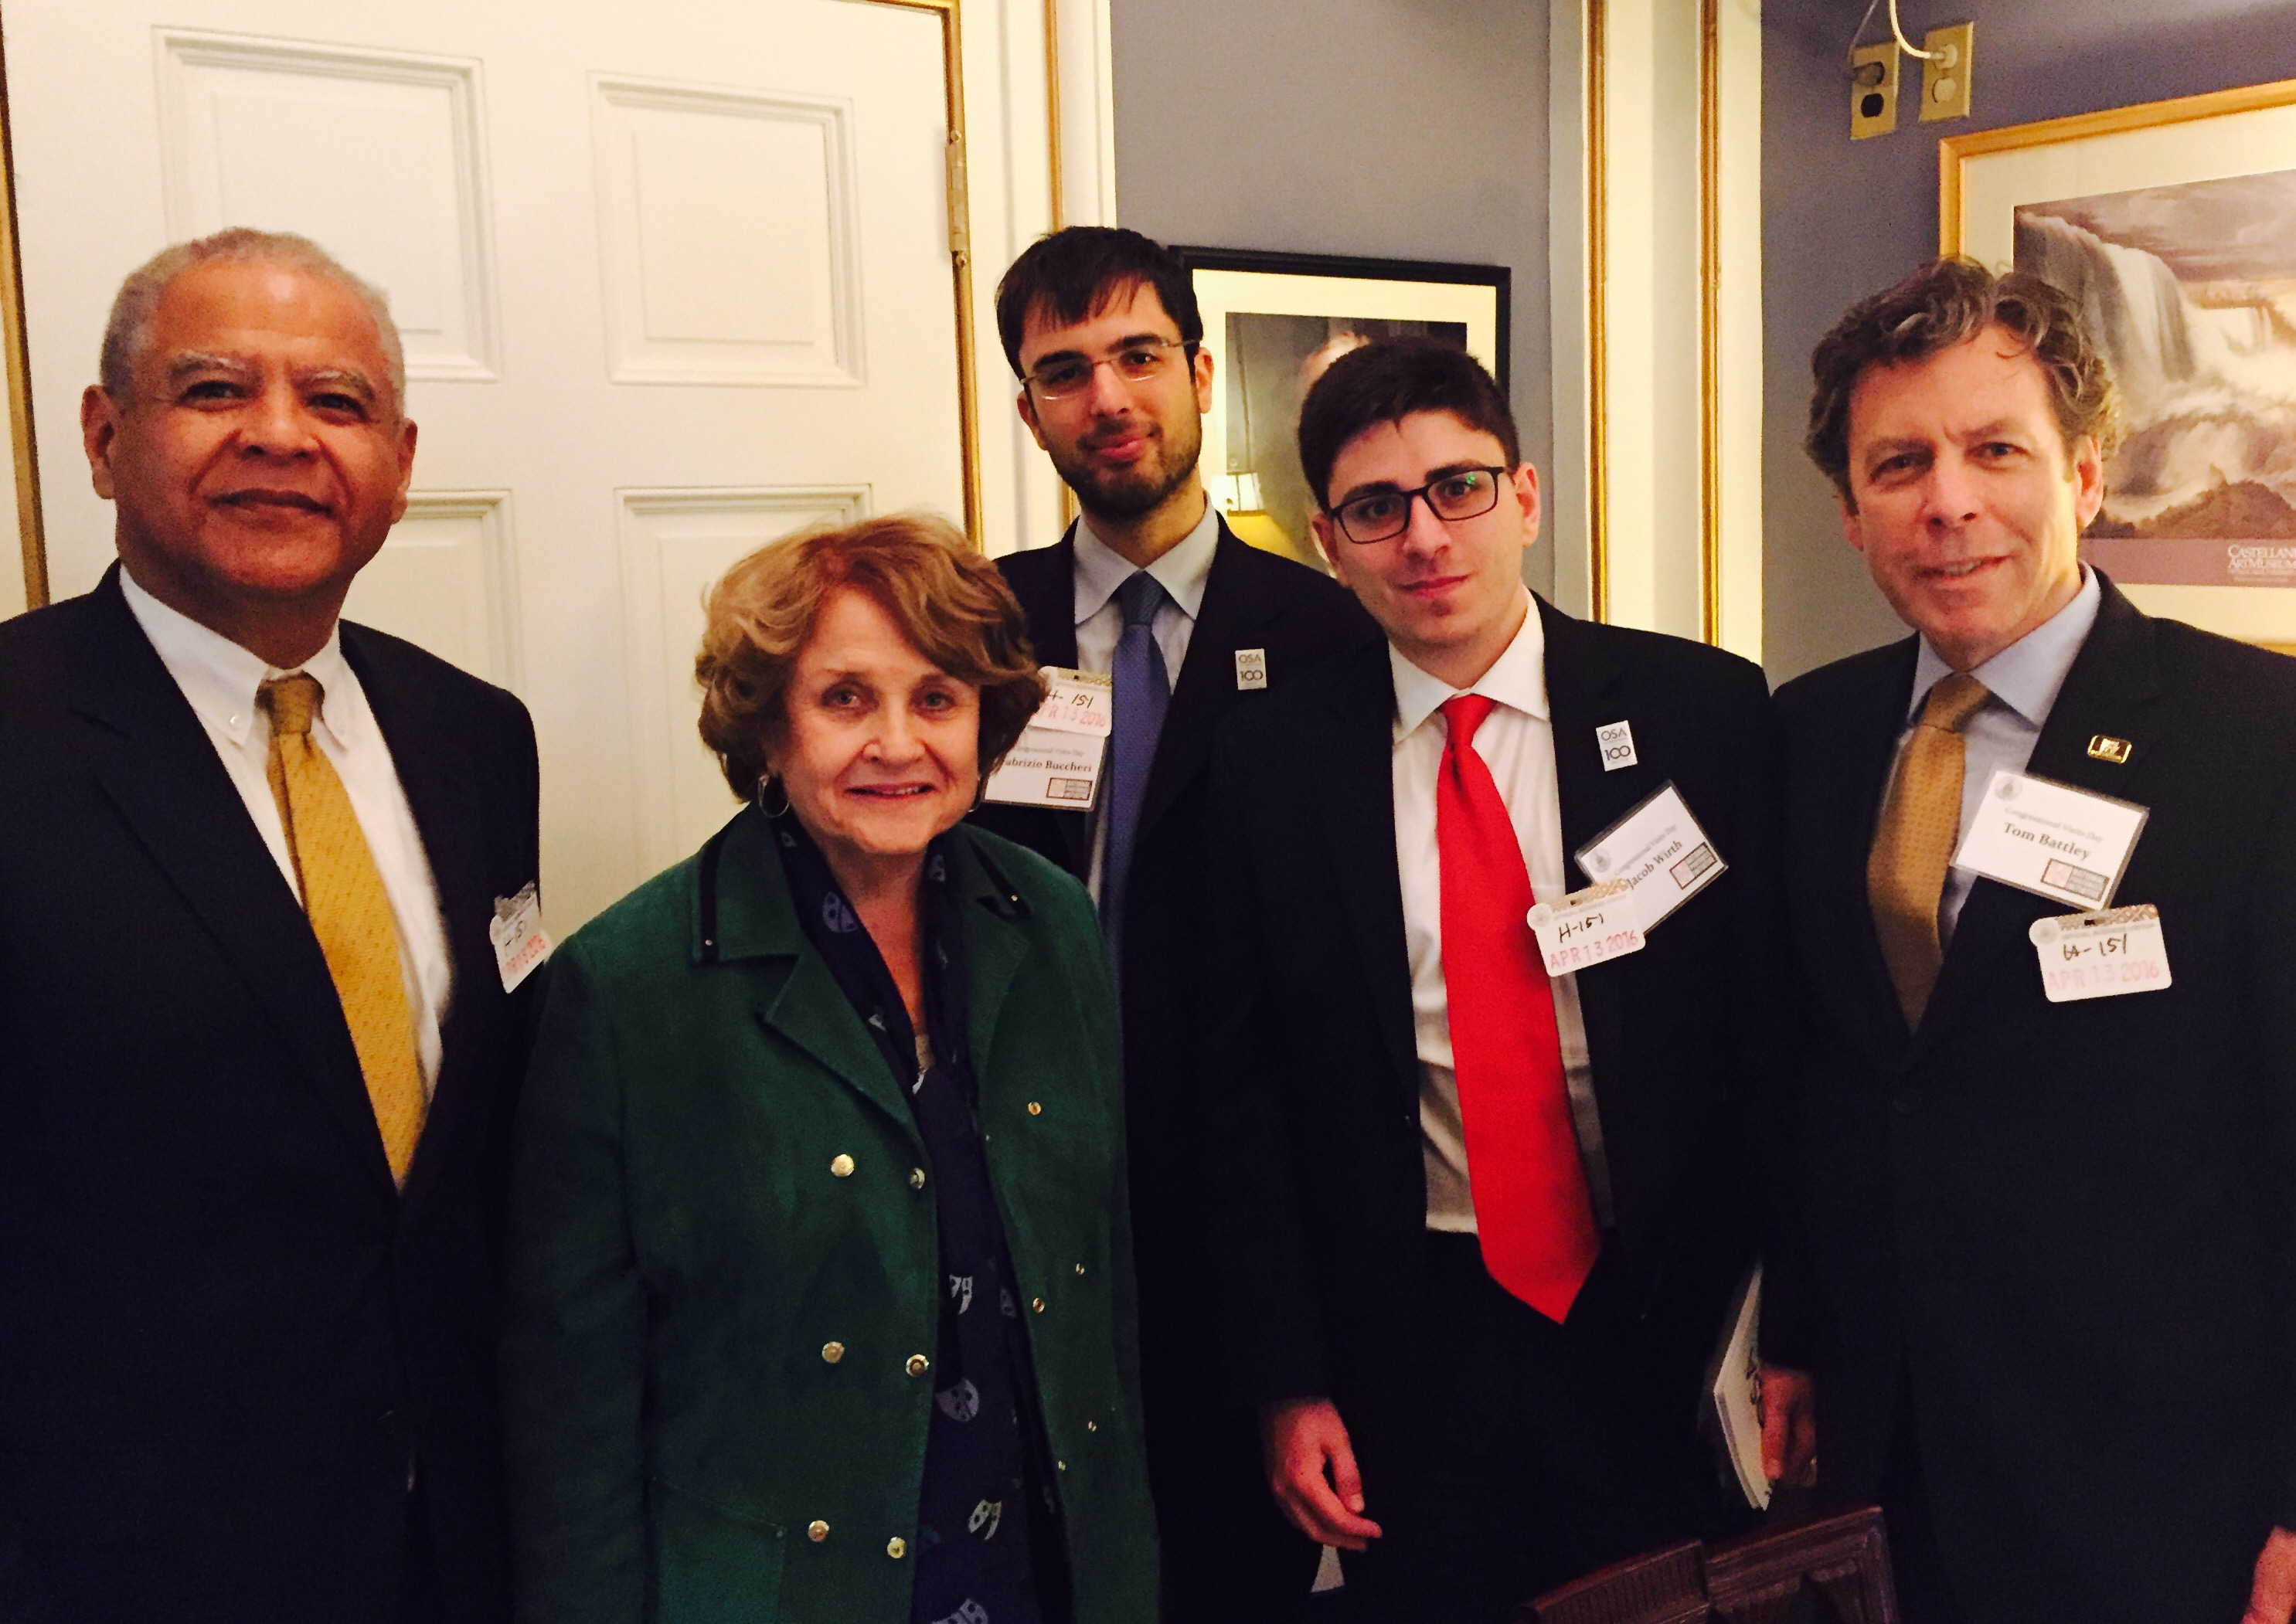 In Rochester Congresswoman Louise Slaughter's office. Left to right: AIM Photonics Executive, Ed White; Congresswoman Louise Slaughter (NY25); UR PhD candidate, Fabrizio Buccheri; RIT PhD candidate, Jacob Wirth; New York Photonics Executive Director, Tom Battley